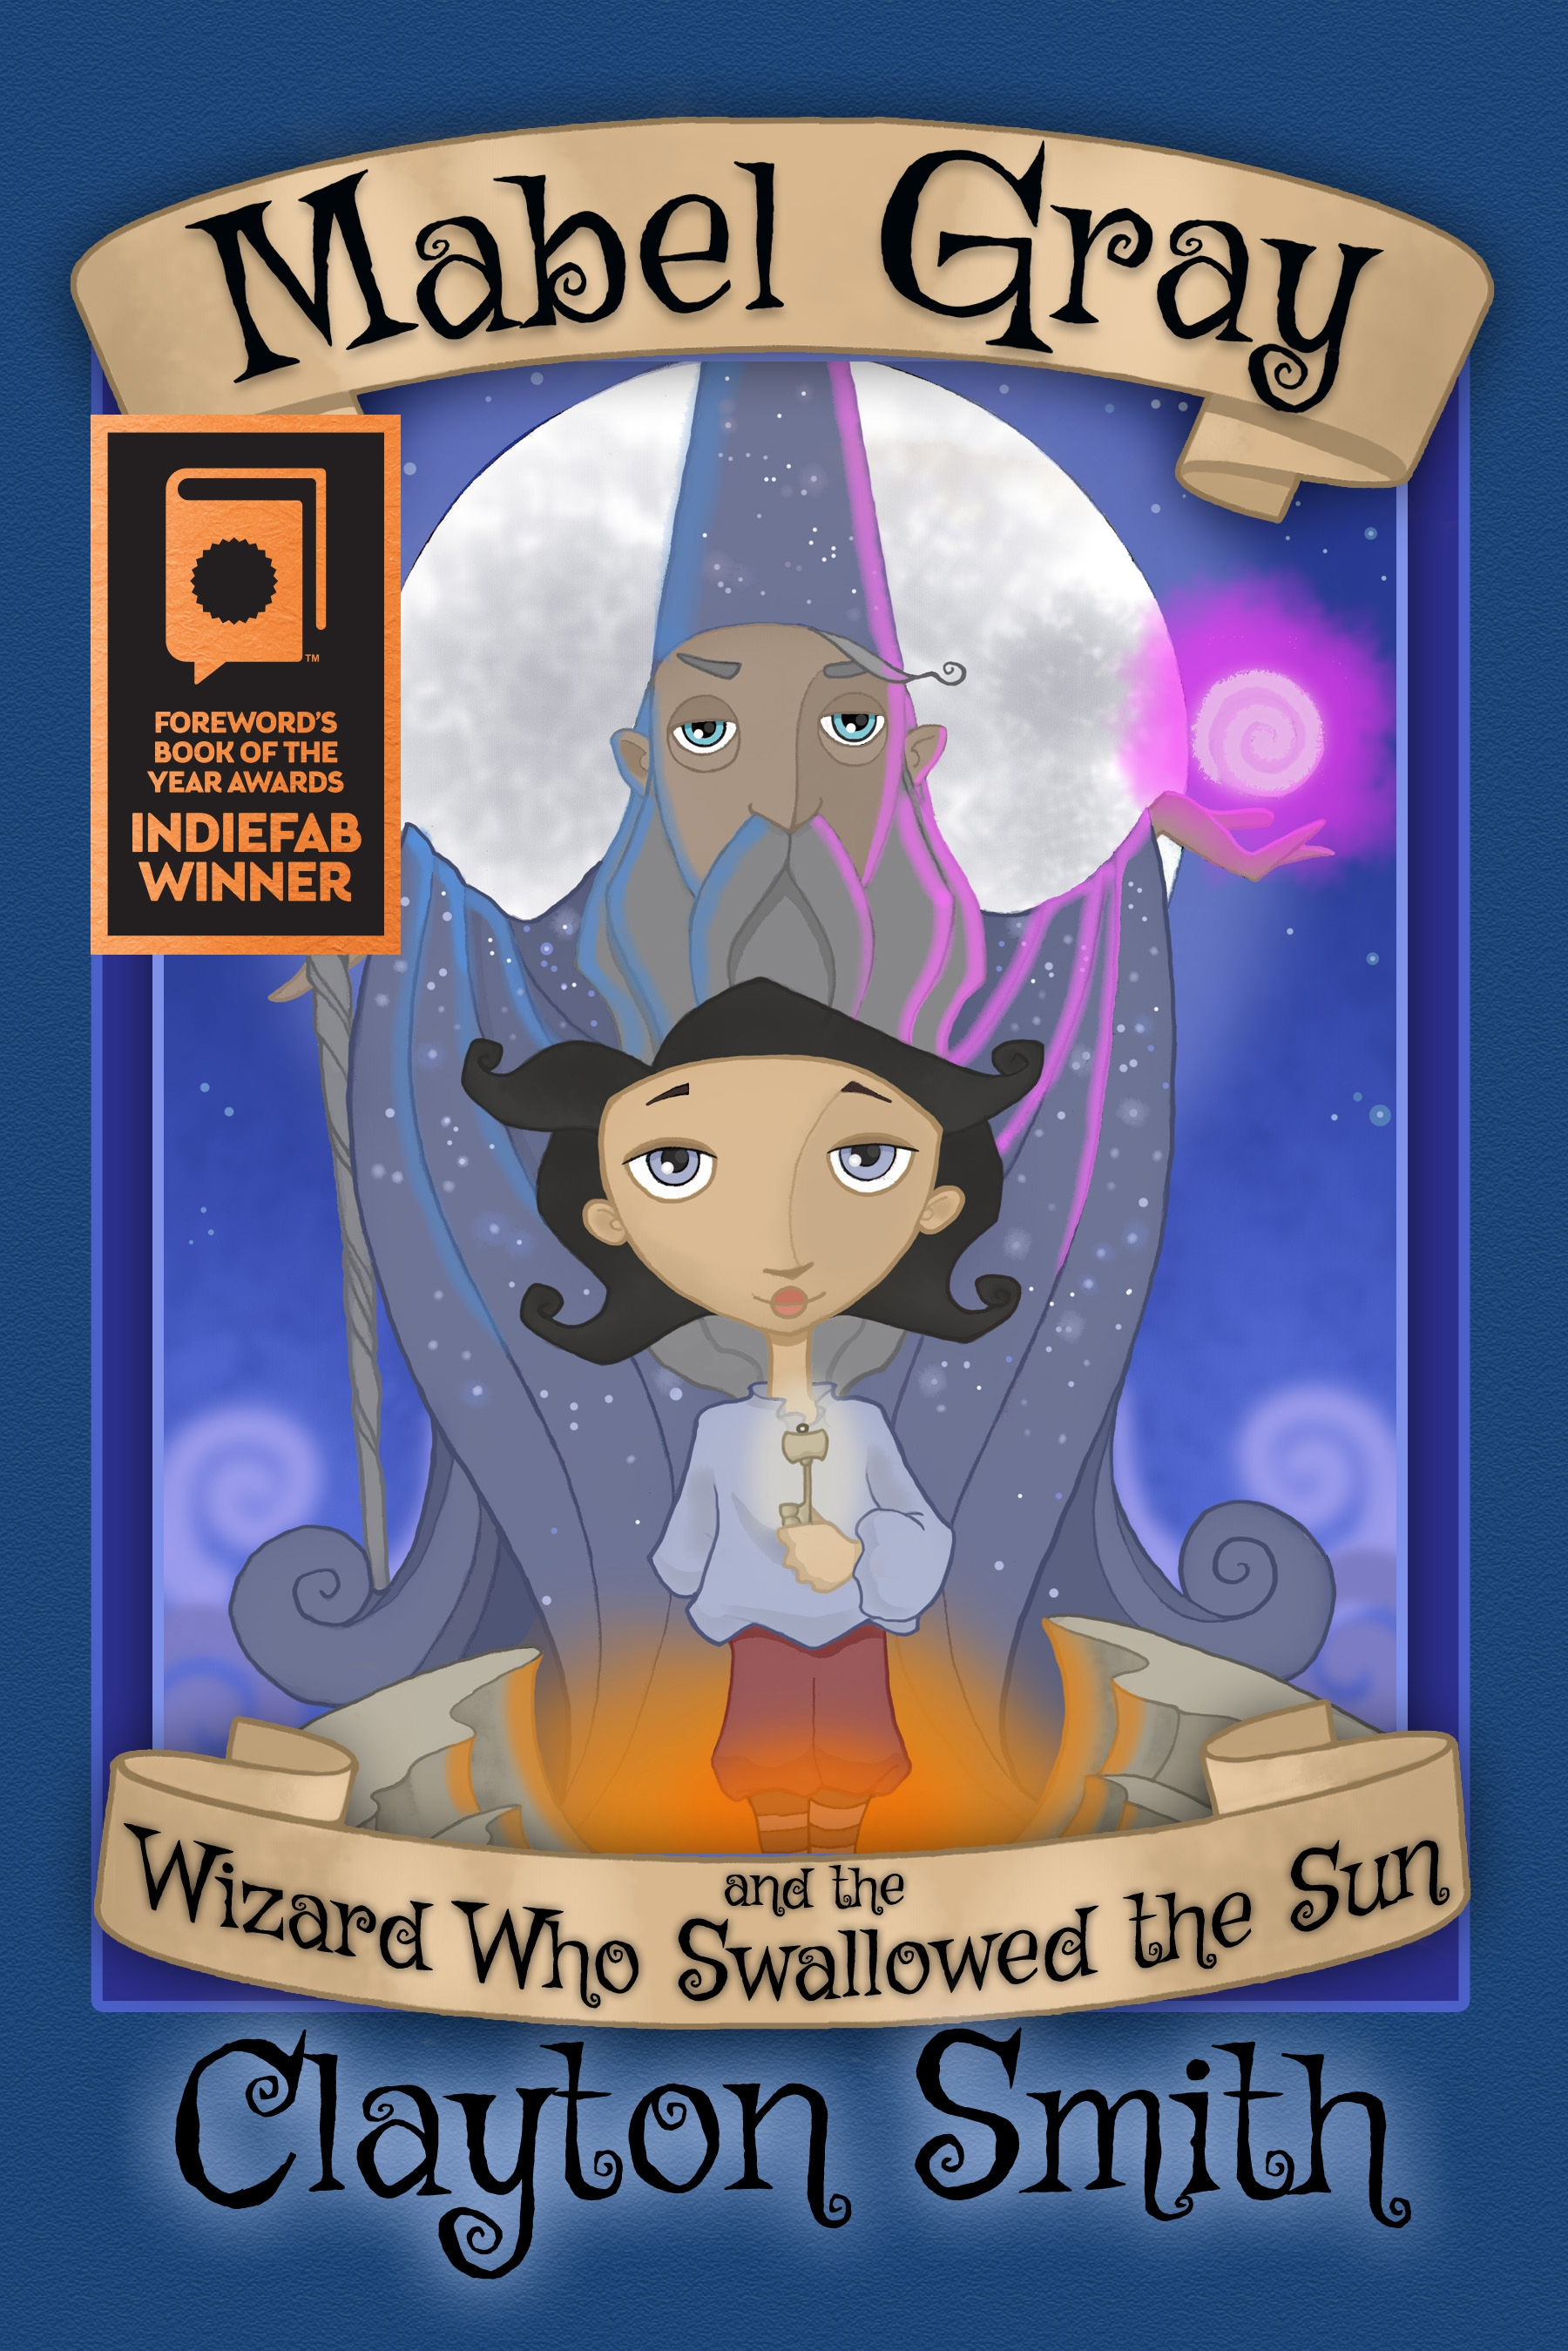 """Mabel Gray and the Wizard Who Swallowed the Sun - 2015 INDIEFAB Book of the Year Award Winner!""""Harry Potter meets Tim Burton"""" in the award-winning adventure that's """"an imaginative romp around a fantastical world of wizards, talking statues, skeletons, a Grandfather Tree...it is whimsical."""""""